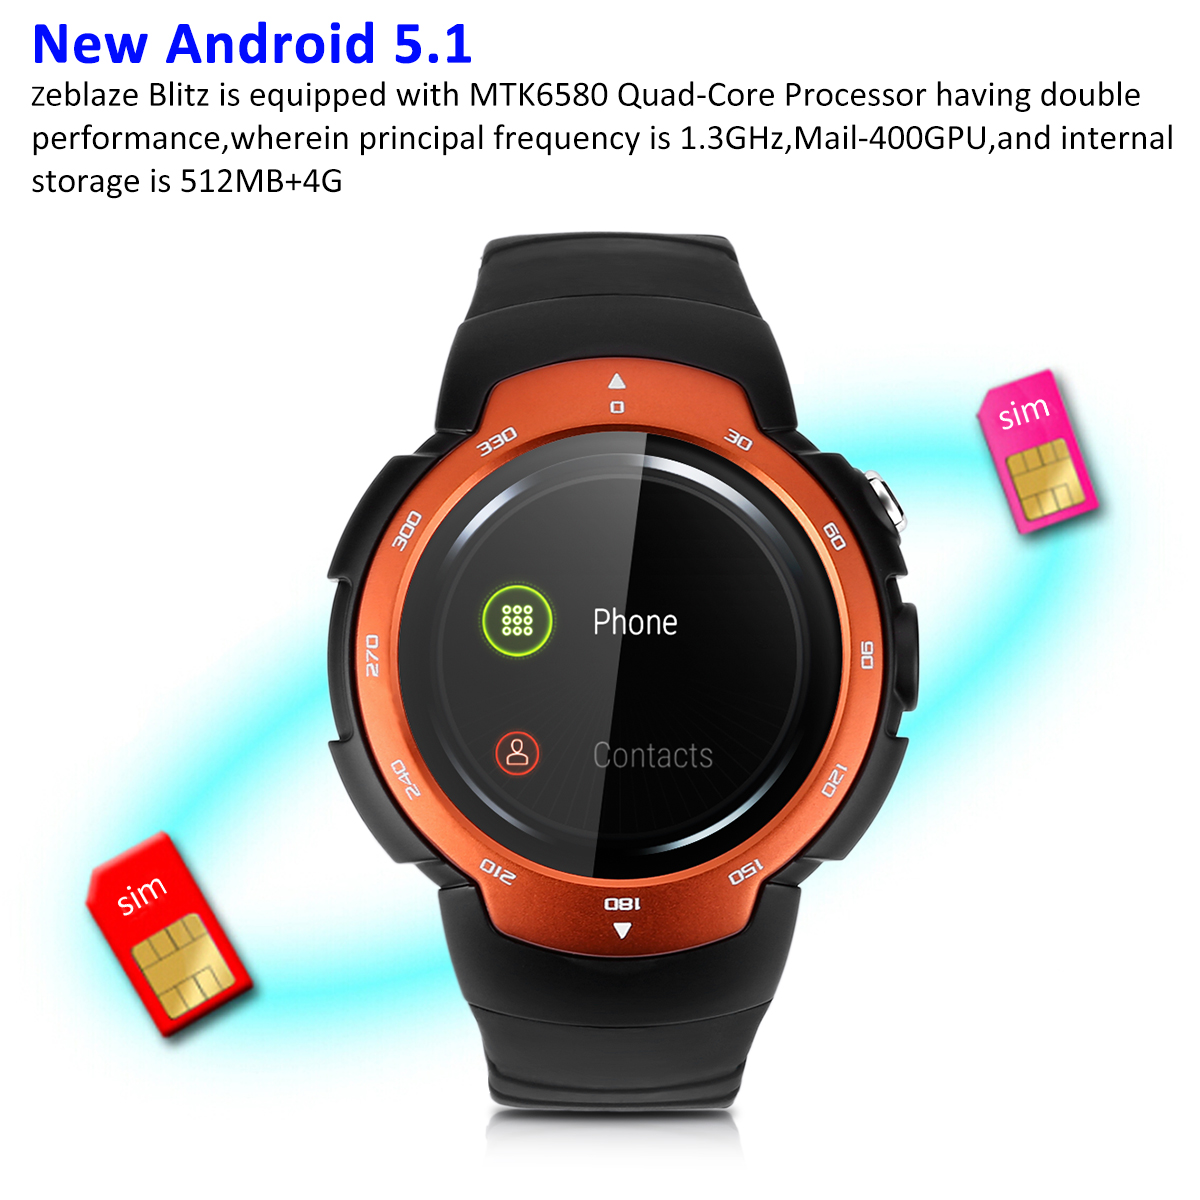 dhl sim cell bluetooth apple watch android watchs iwatch men samsung smartwatch free smart online intelligent product phone watches